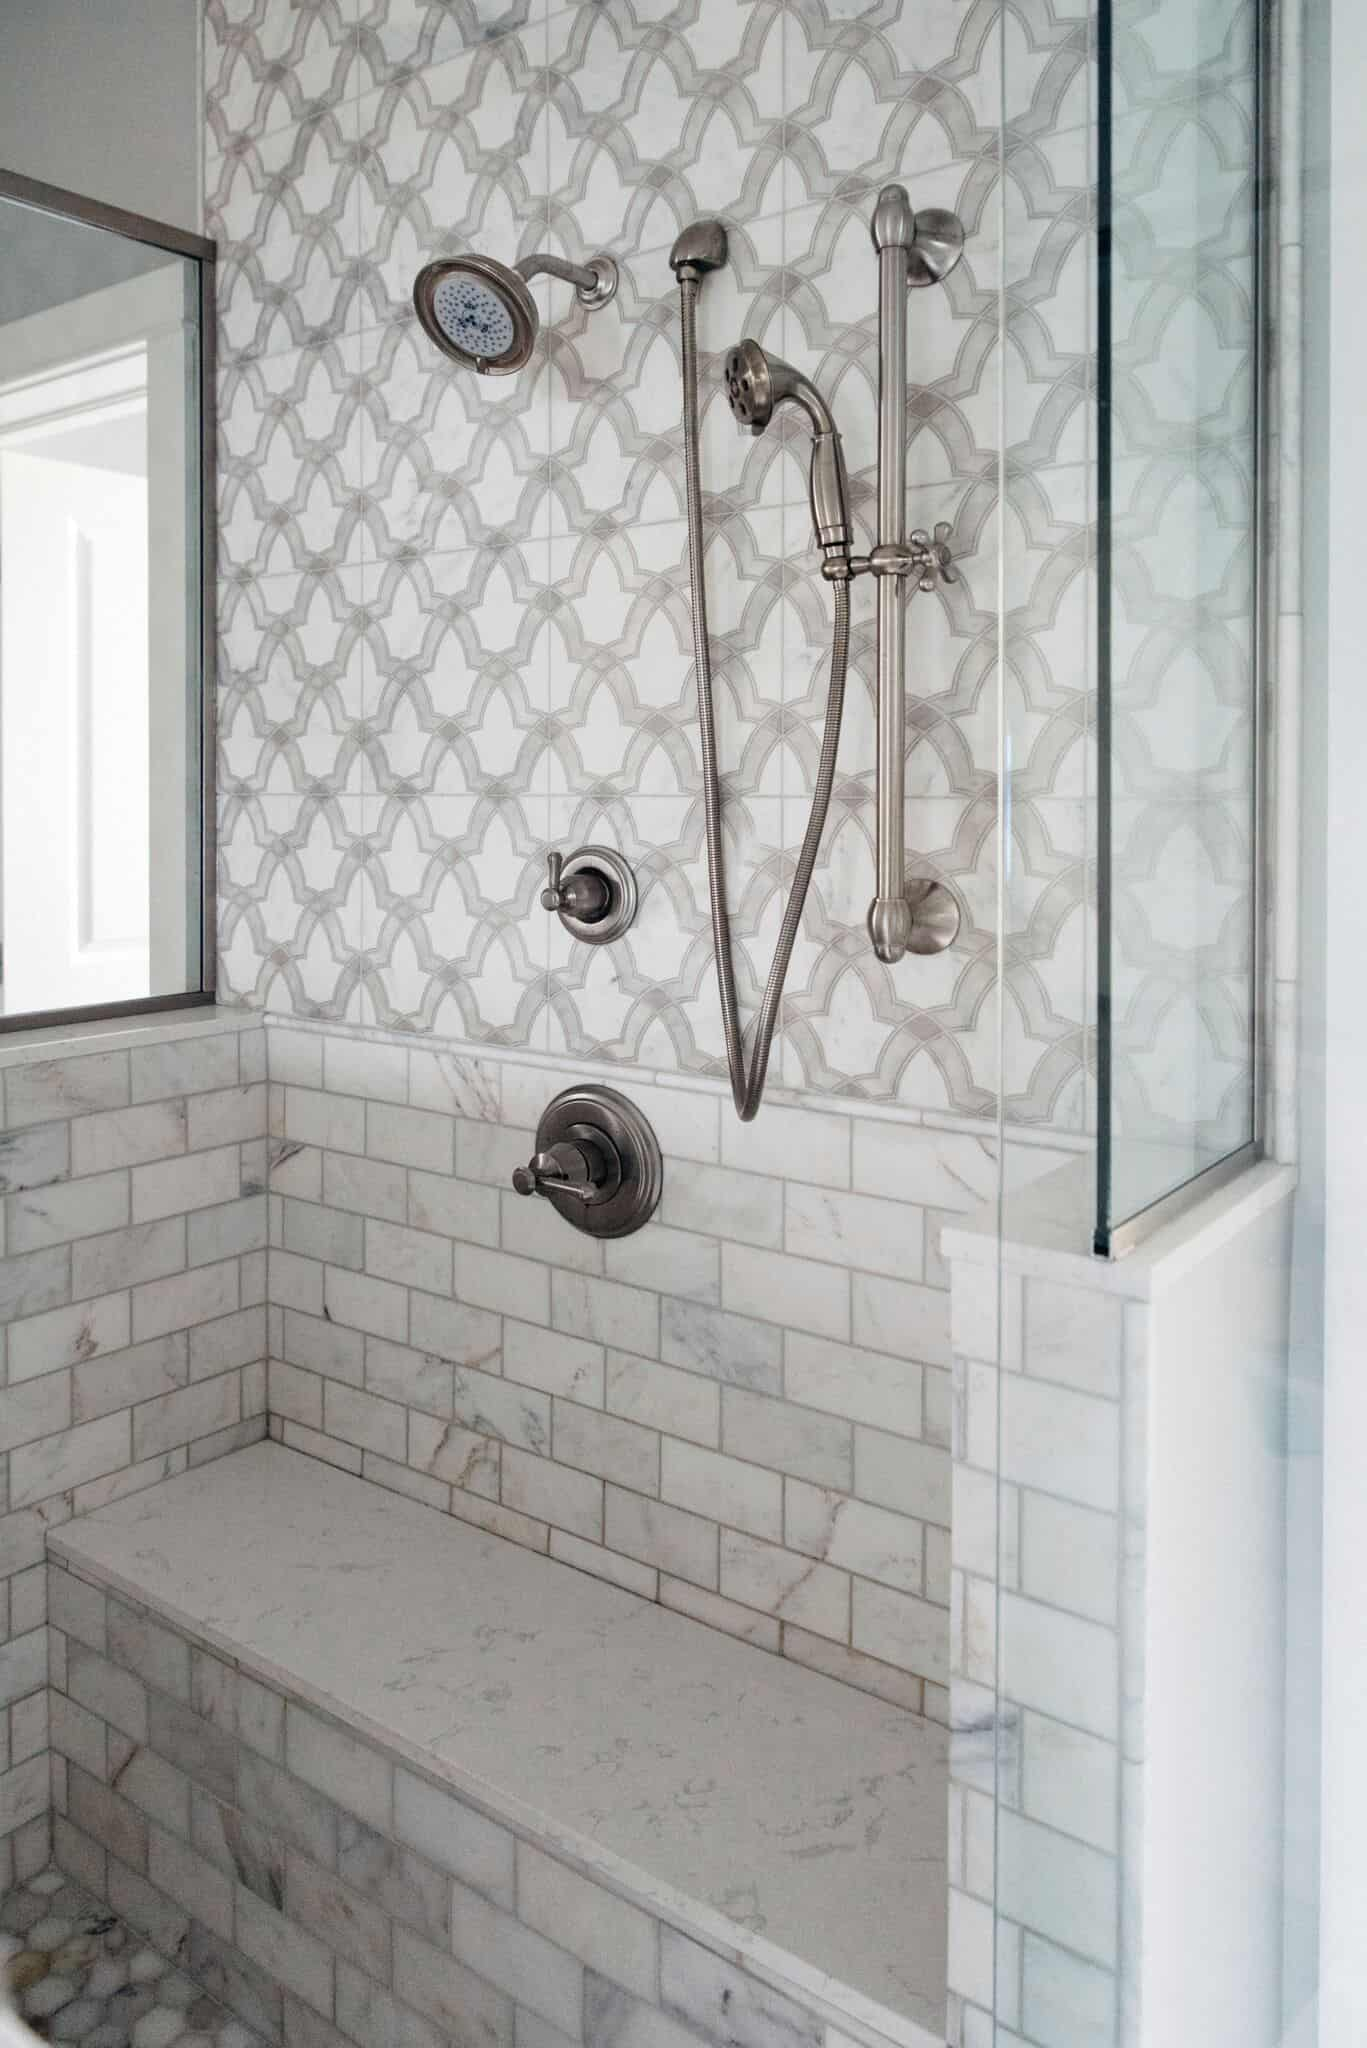 Modern tile featuring evolve pattern on carrara in shower